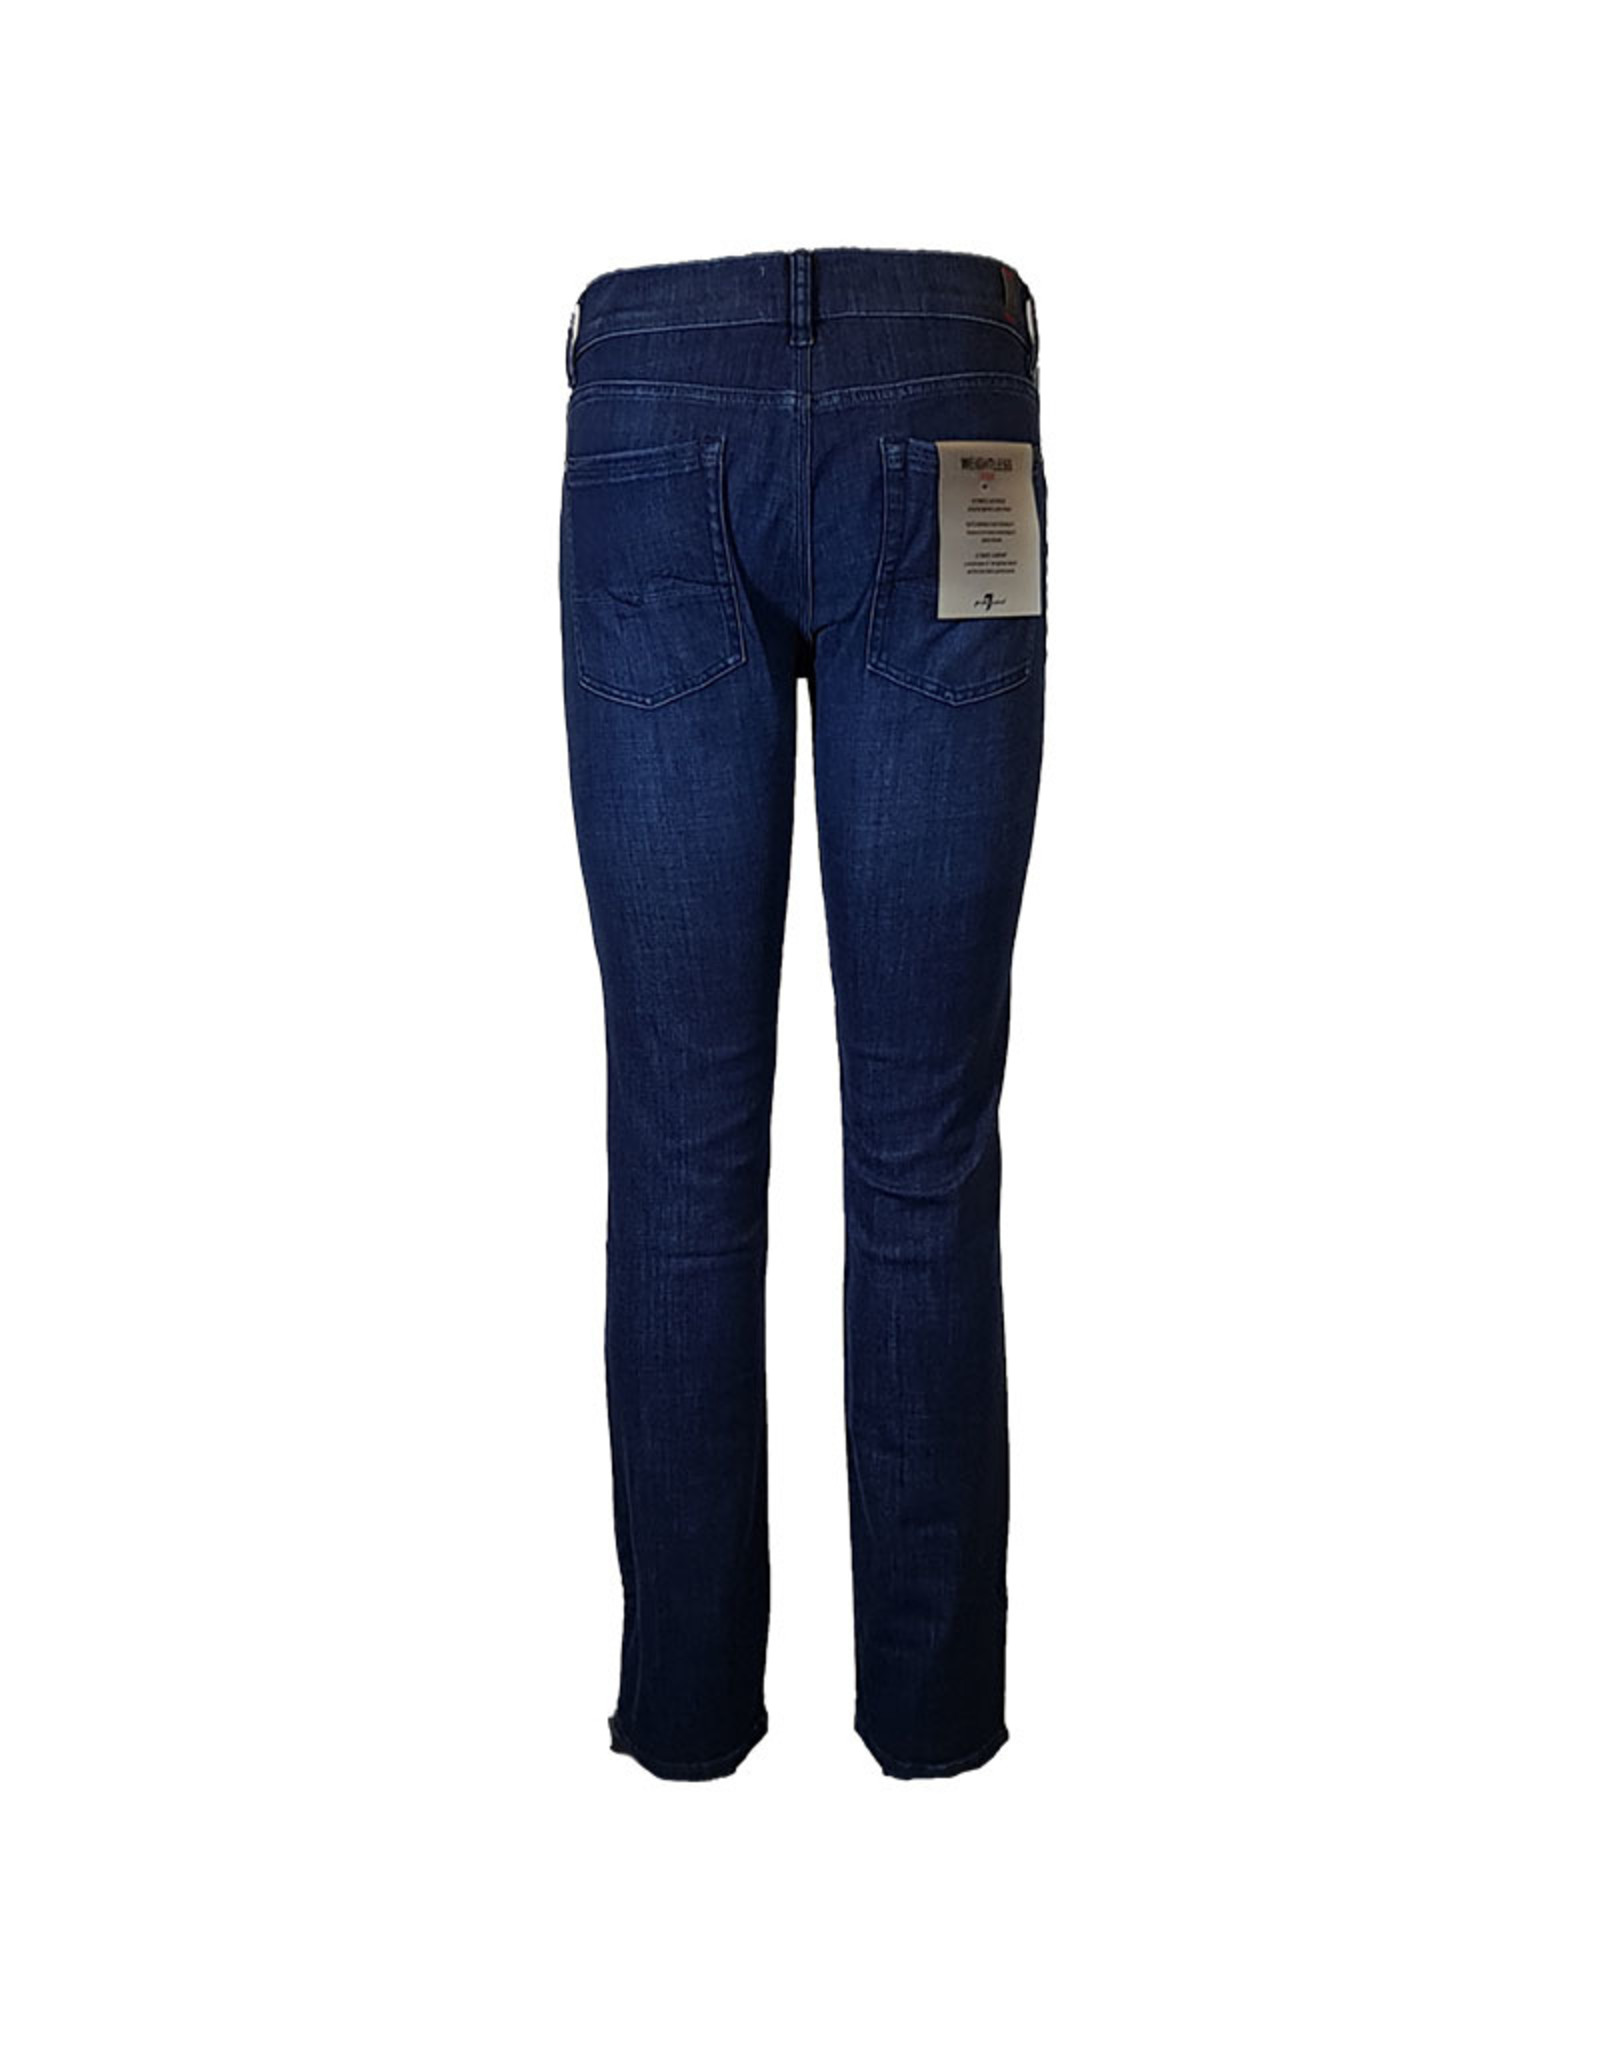 7 For All Mankind 7FAM jeans blauw Slimmy JSMSU490BH